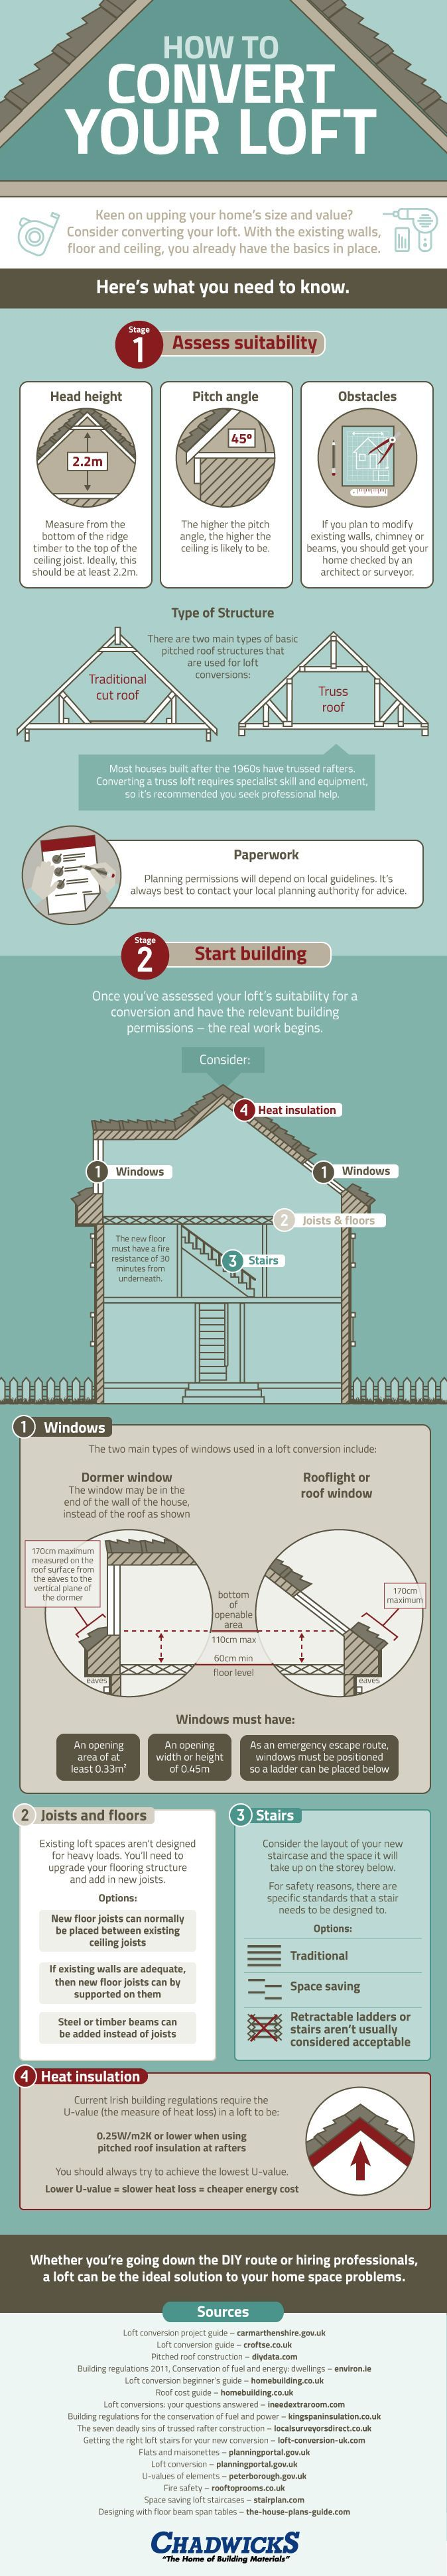 How to Convert Your Loft #infographic | Latest Infographics ...